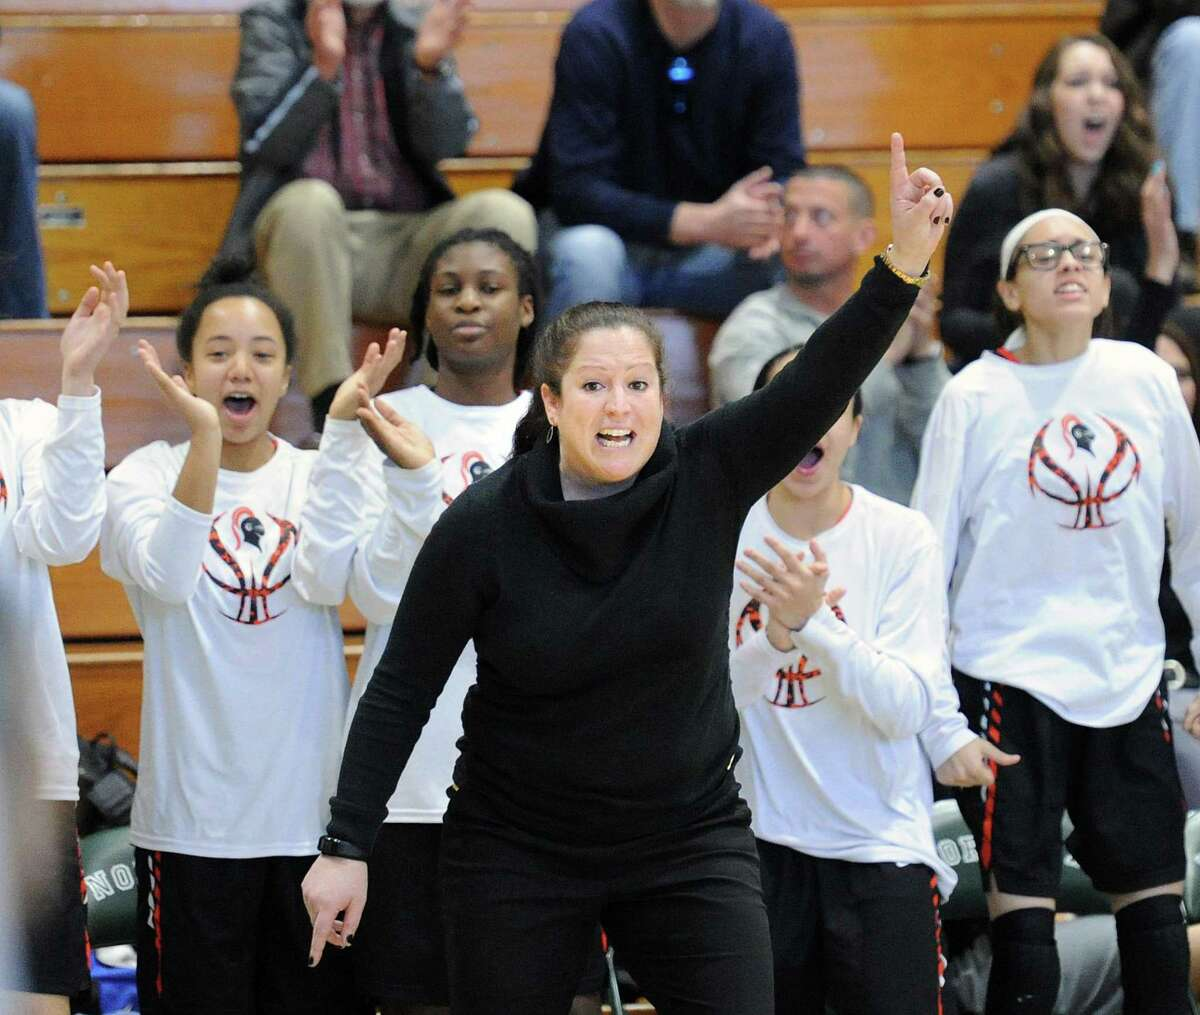 Stamford High School girls basketball coach Diane Burns, center, reacts during the FCIAC girls high school basketball quarter-final playoff game between Norwalk High School and Stamford High School at Norwalk, Conn., Saturday, Feb. 17, 2018.